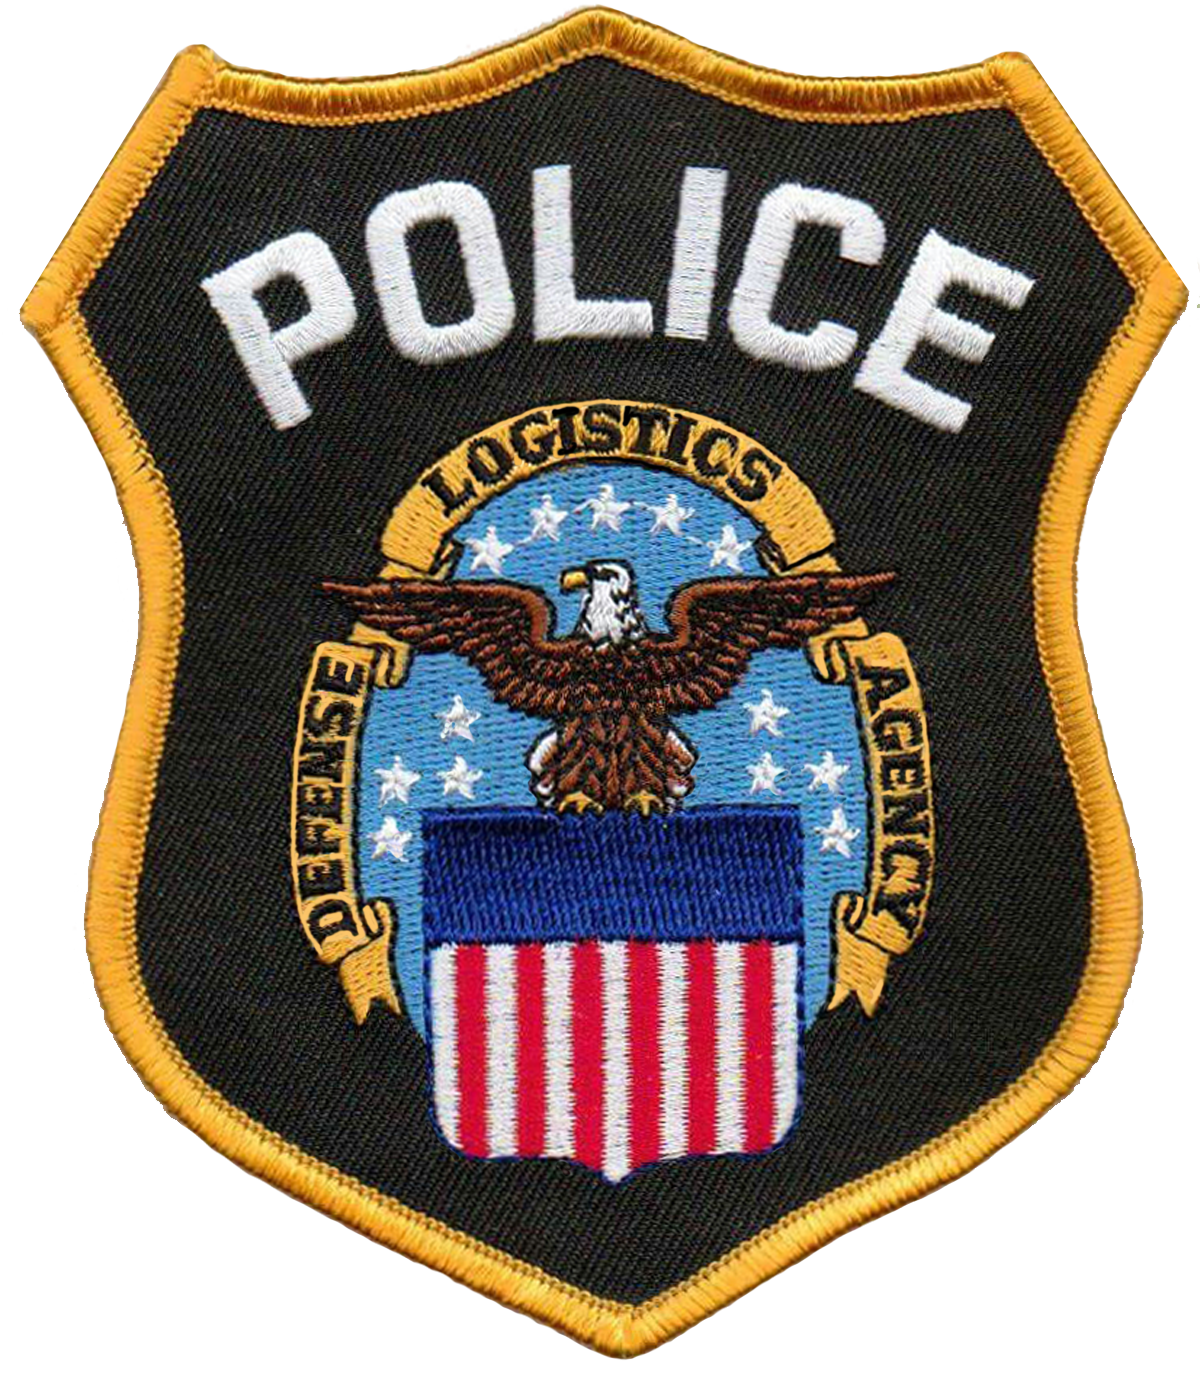 Police And Media: Defense Logistics Agency